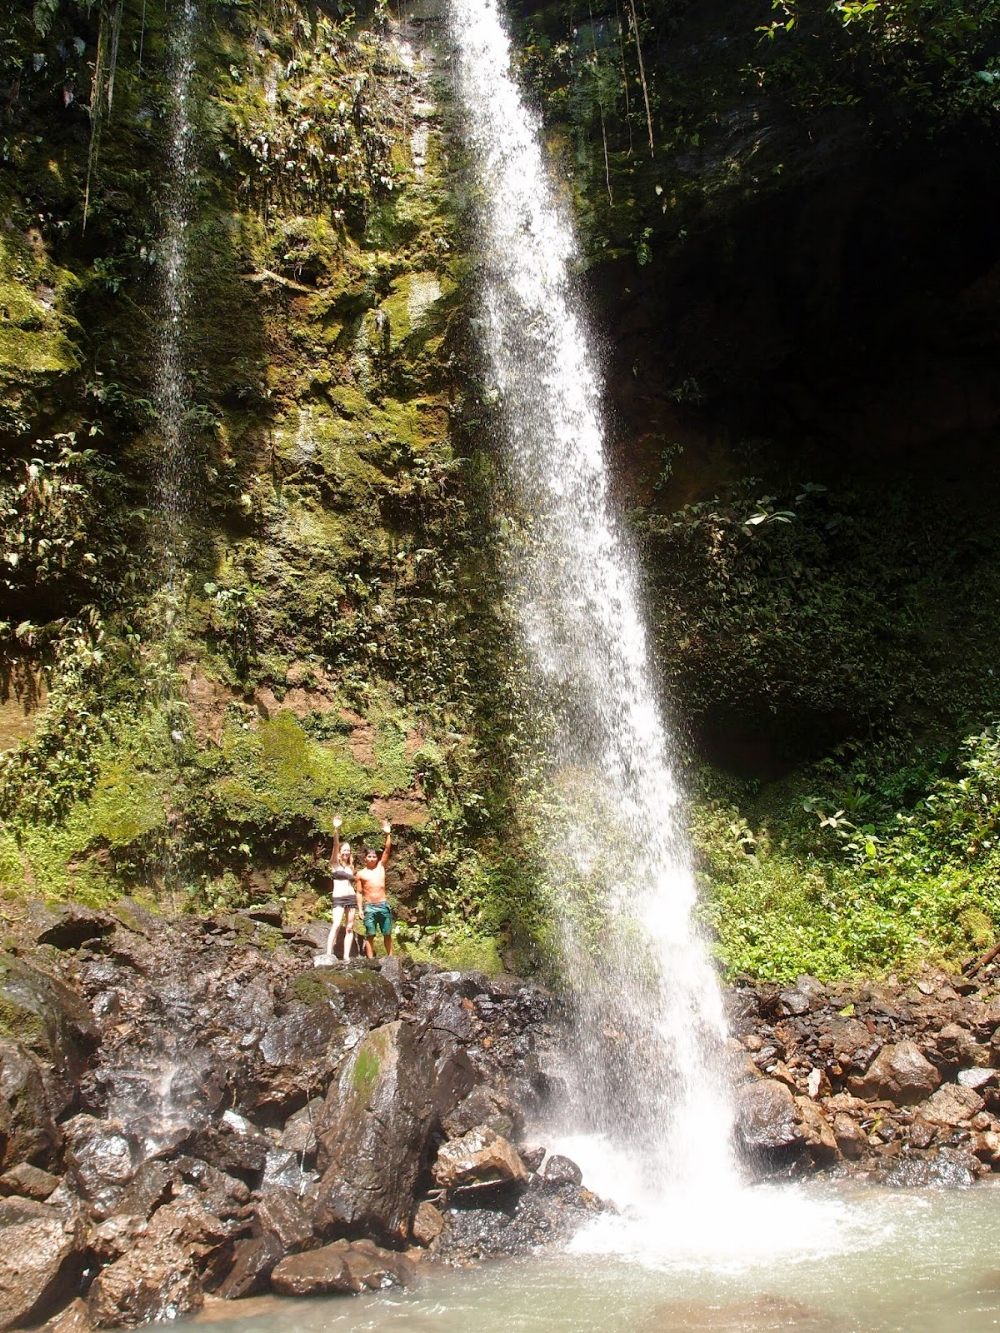 Pegonka and Laura at a sacred waterfall in the remote Huaorani territory of the Ecuadorian Amazon